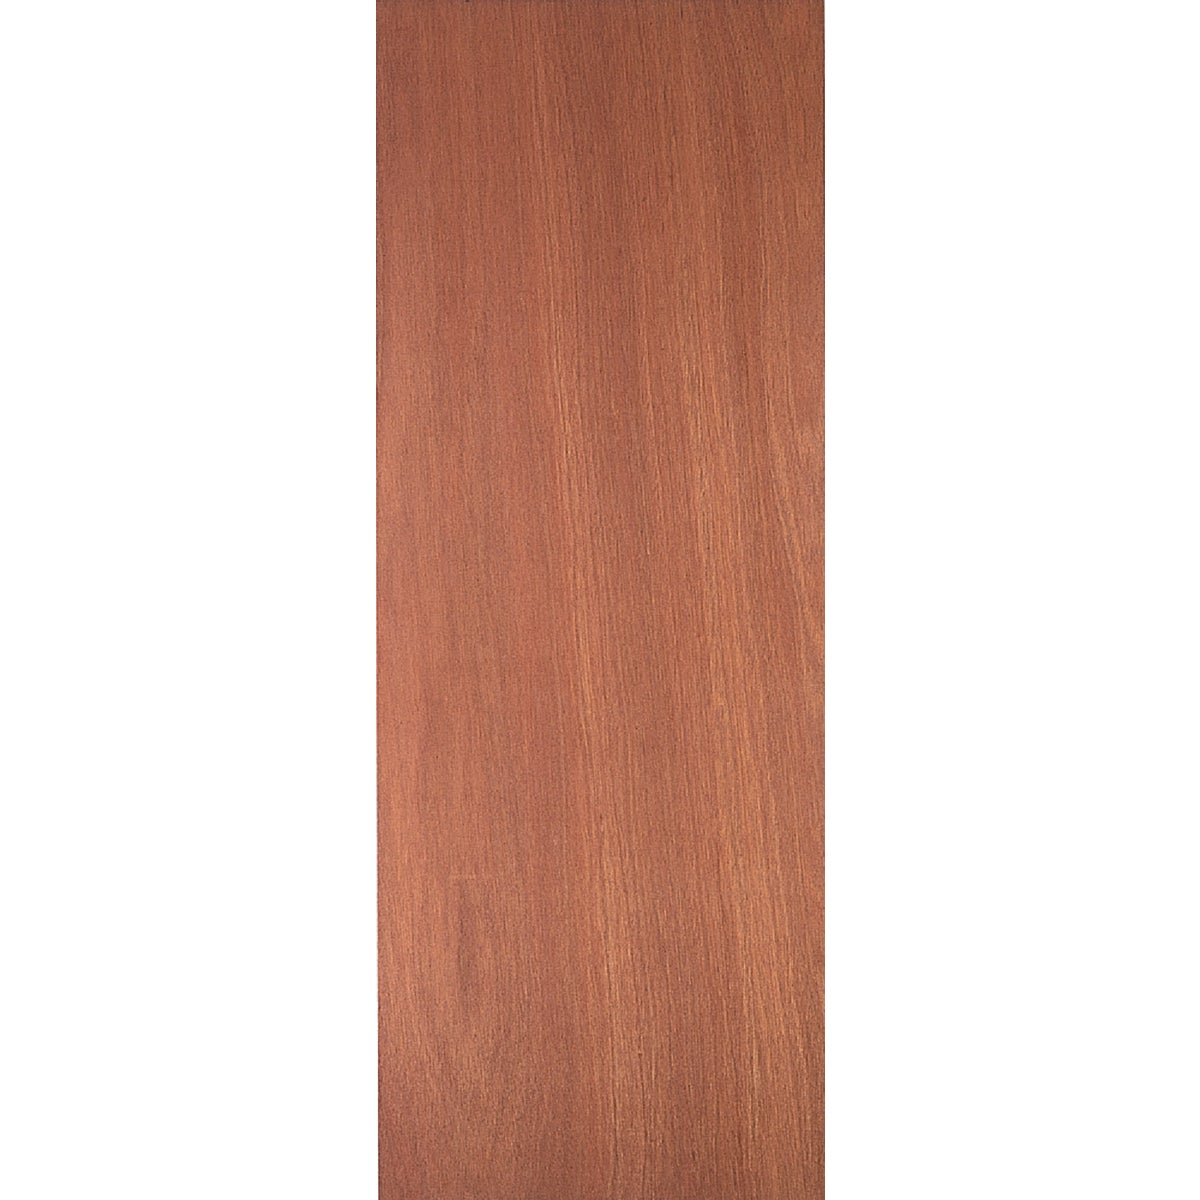 "2/2 1-3/8"" LAUAN HC DOOR - 2/2X6/8 by Masonite"